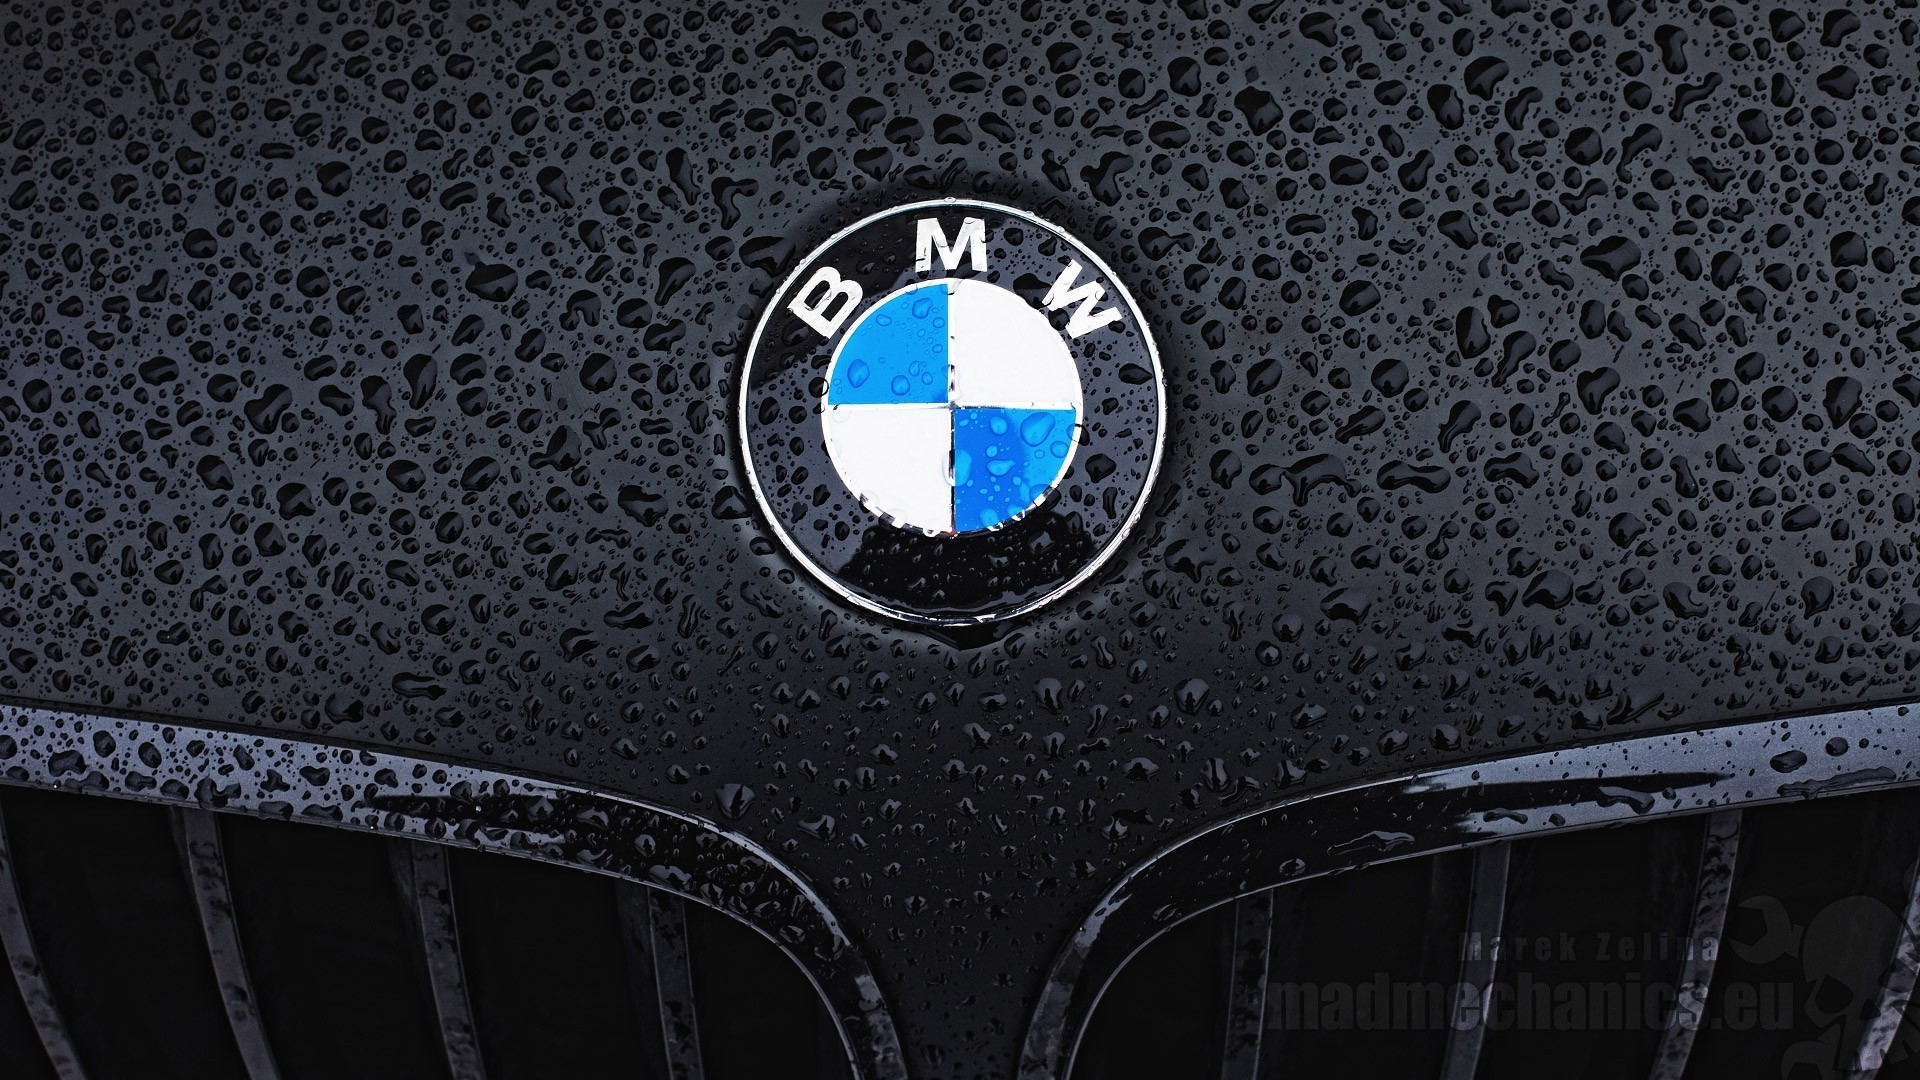 bmw logo wallpapers check out these 72 awesome bmw logo wallpapers for .